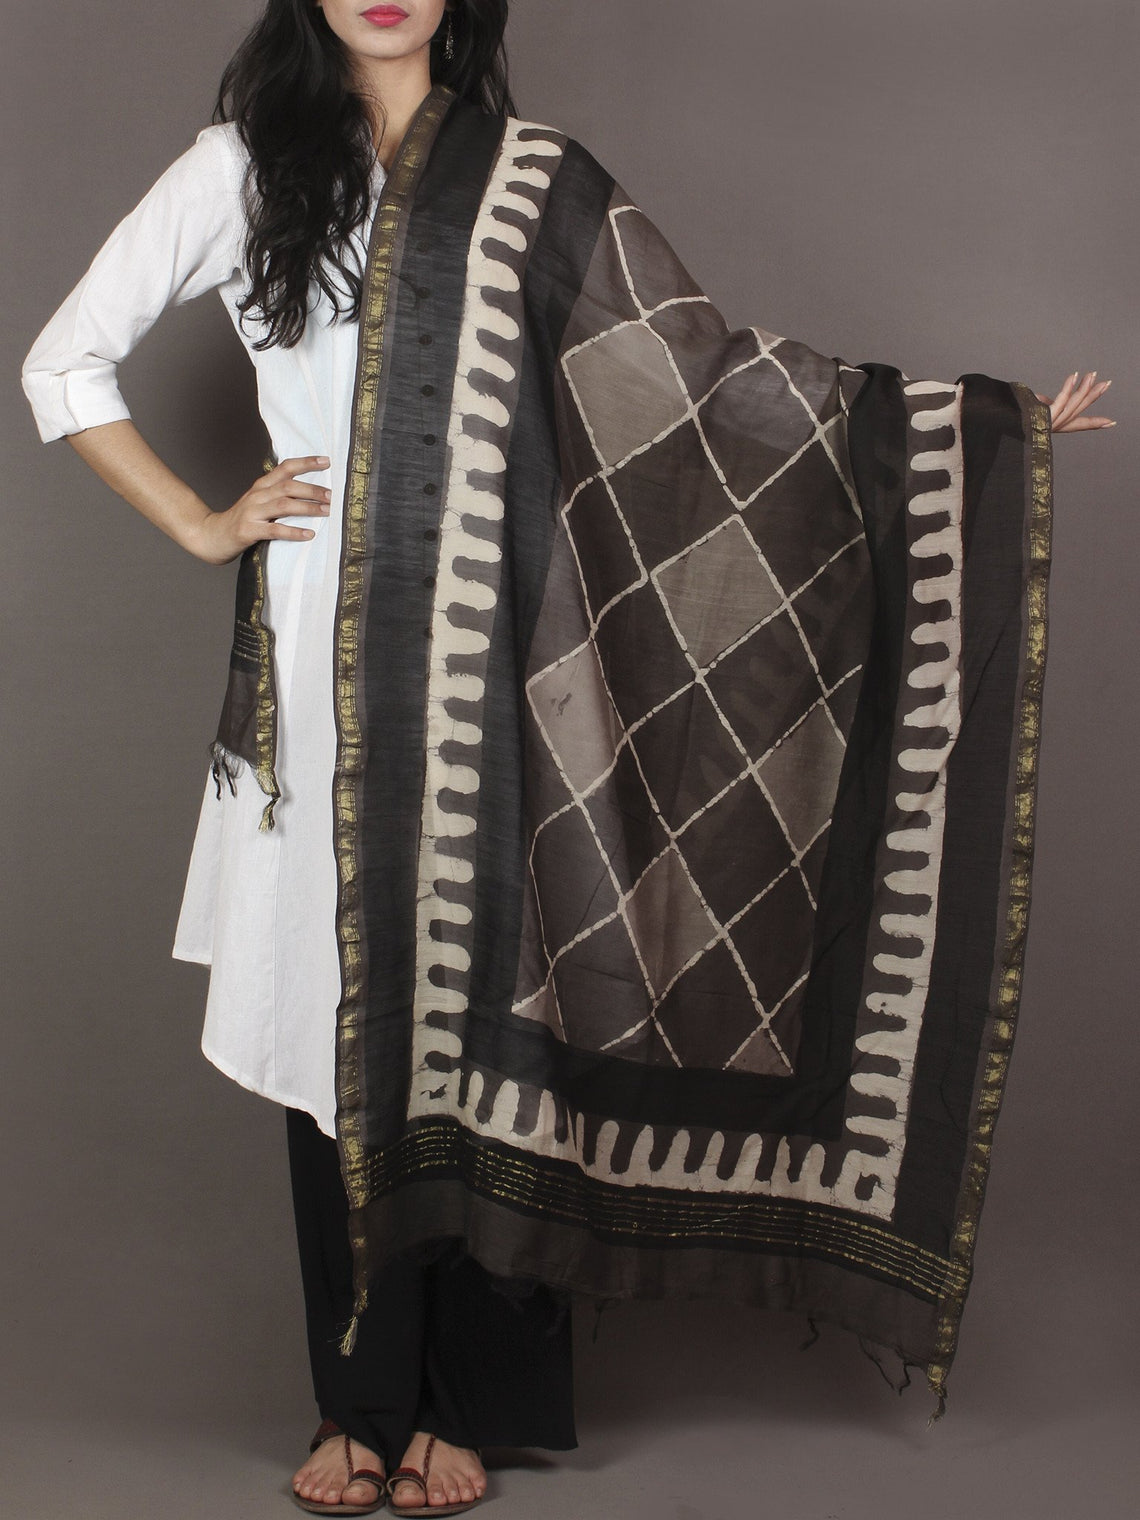 Brown Beige Black Chanderi Hand Black Printed Dupatta - D04170110